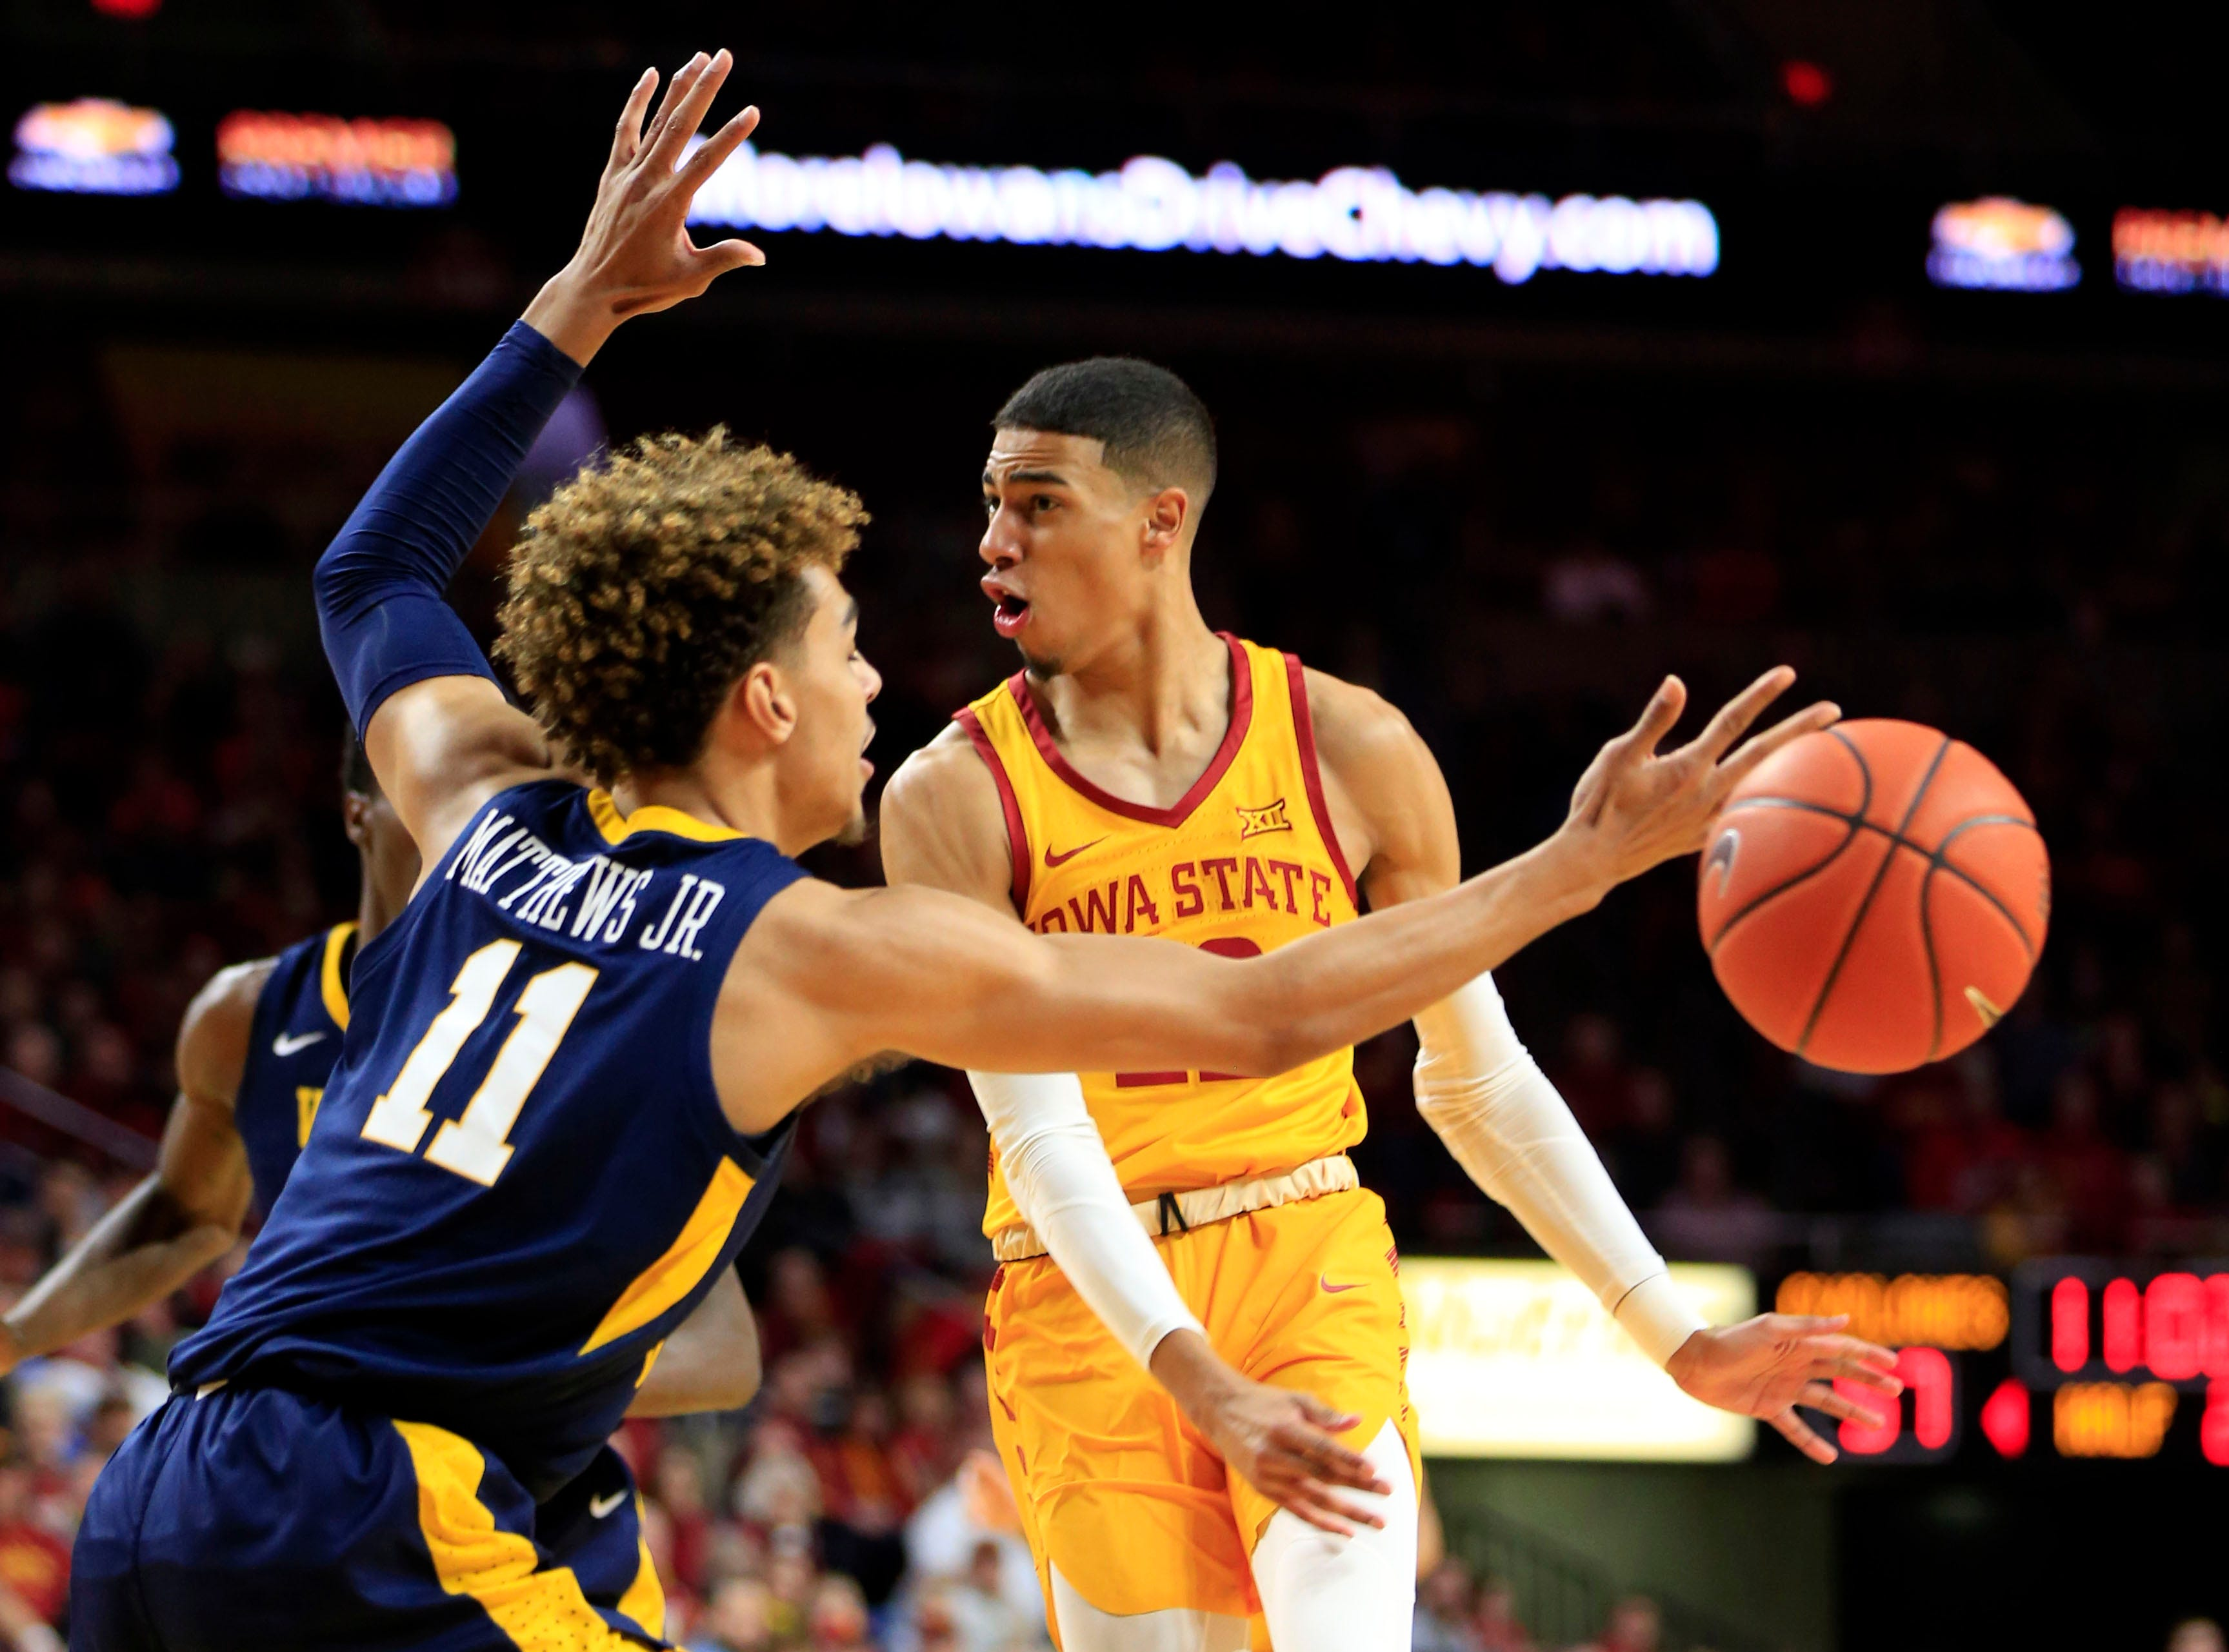 Iowa State's Tyrese Haliburton makes a pass during a game against West Virginia at Hilton Coliseum Wednesday, Jan. 30, 2019.